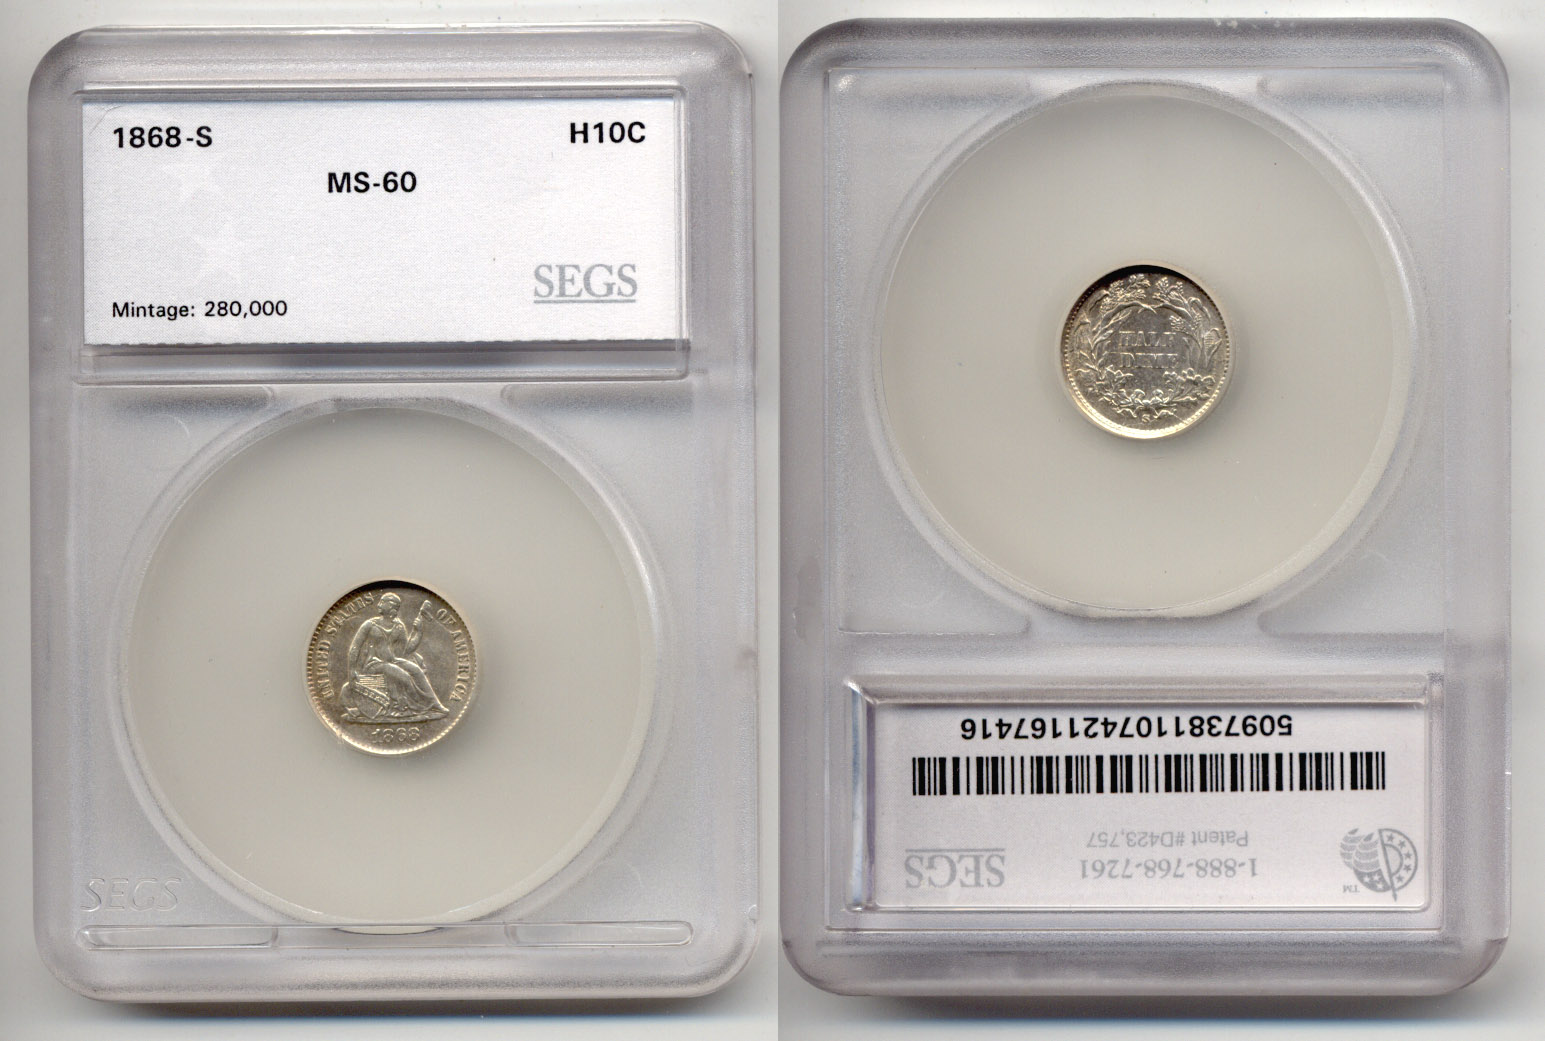 1868-S Seated Liberty Half Dime SEGS MS-60